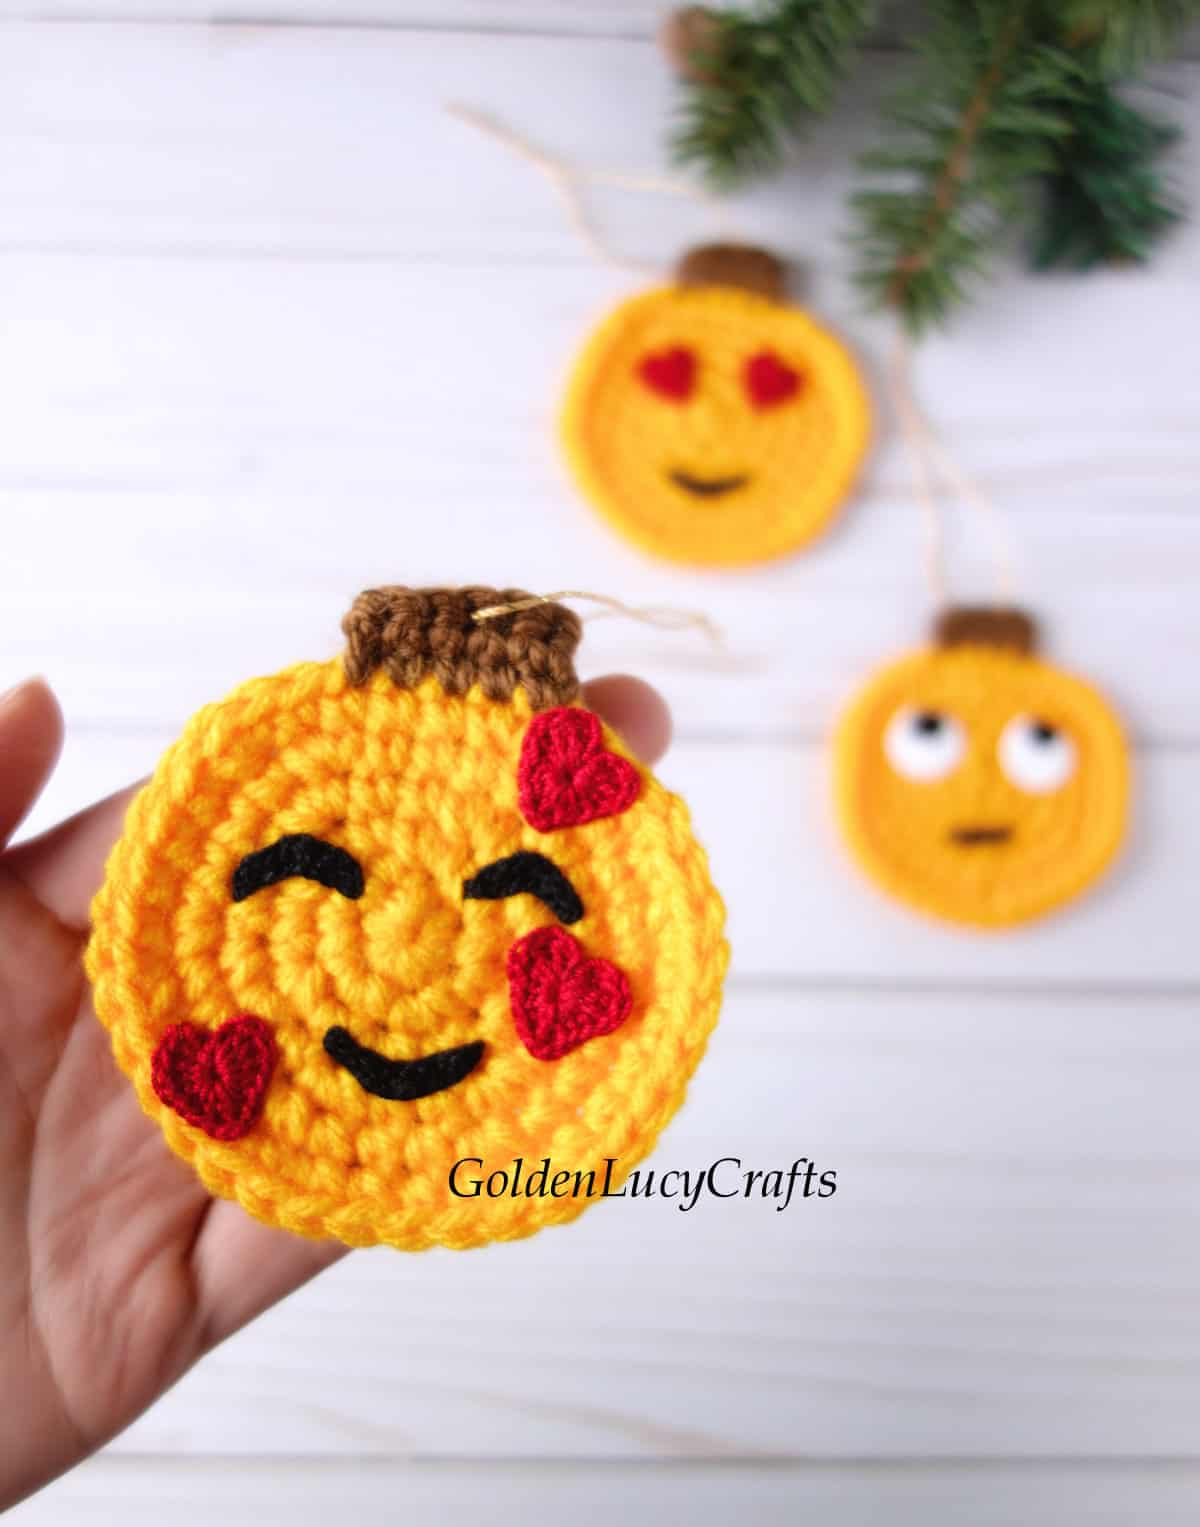 Crochet emoji ornament in the palm of a hand